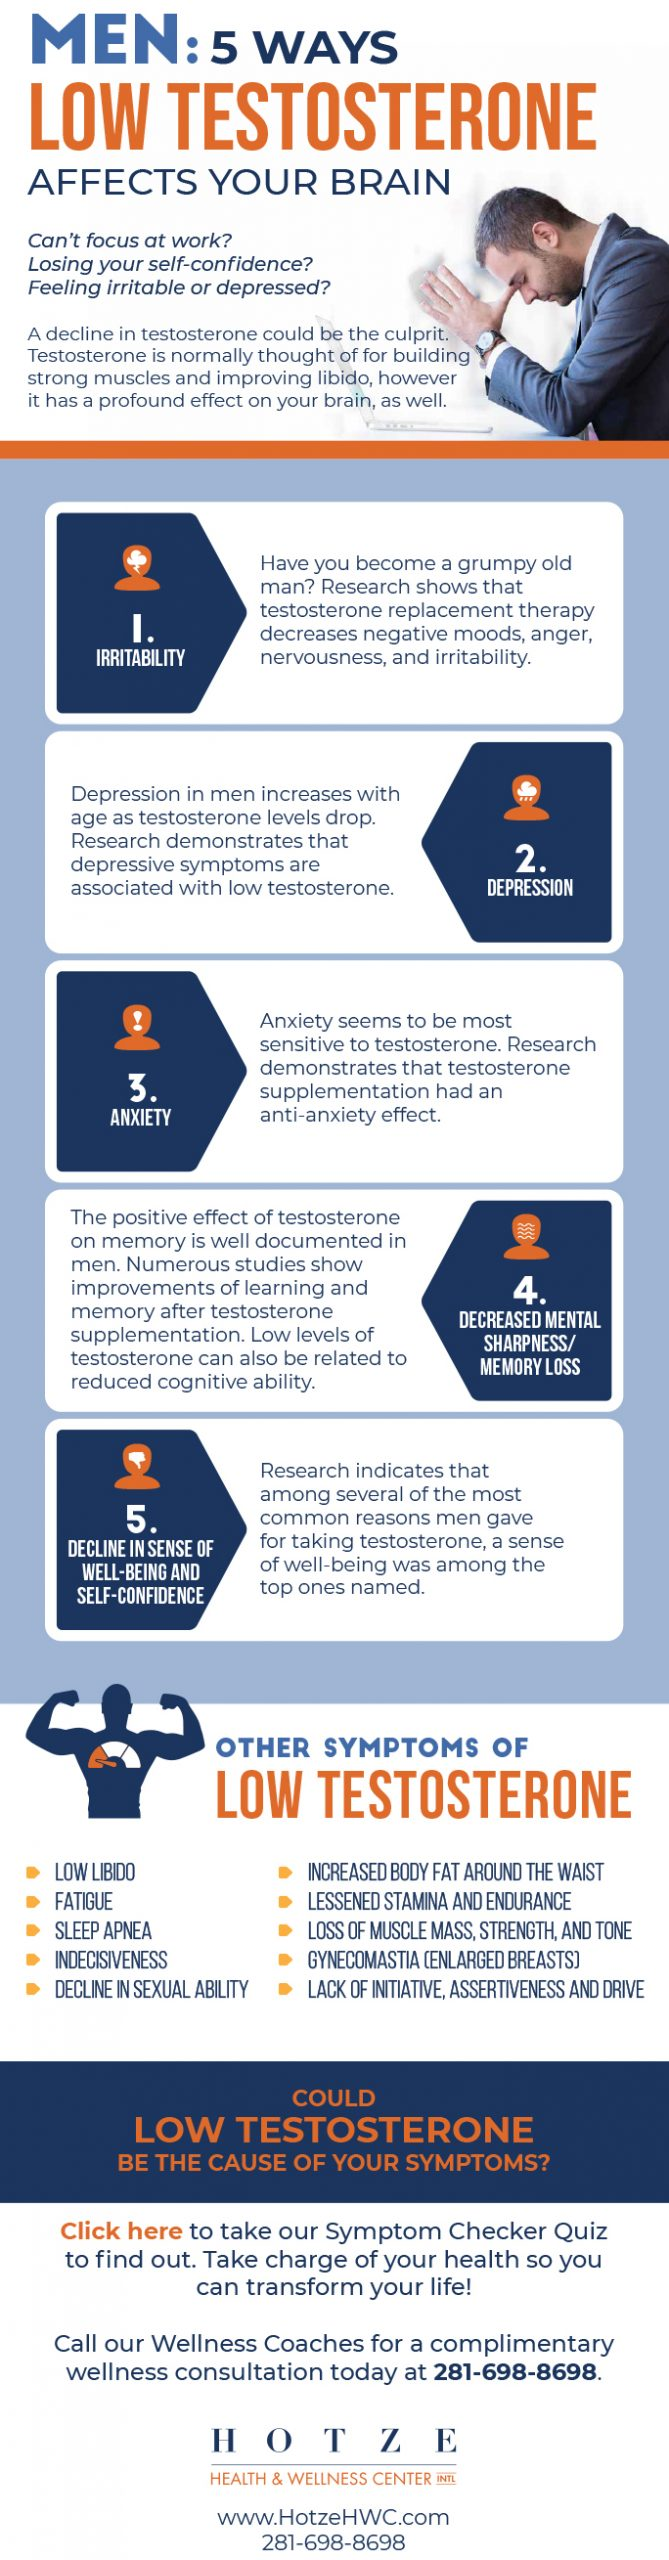 infographic how low testosterone affects brain health